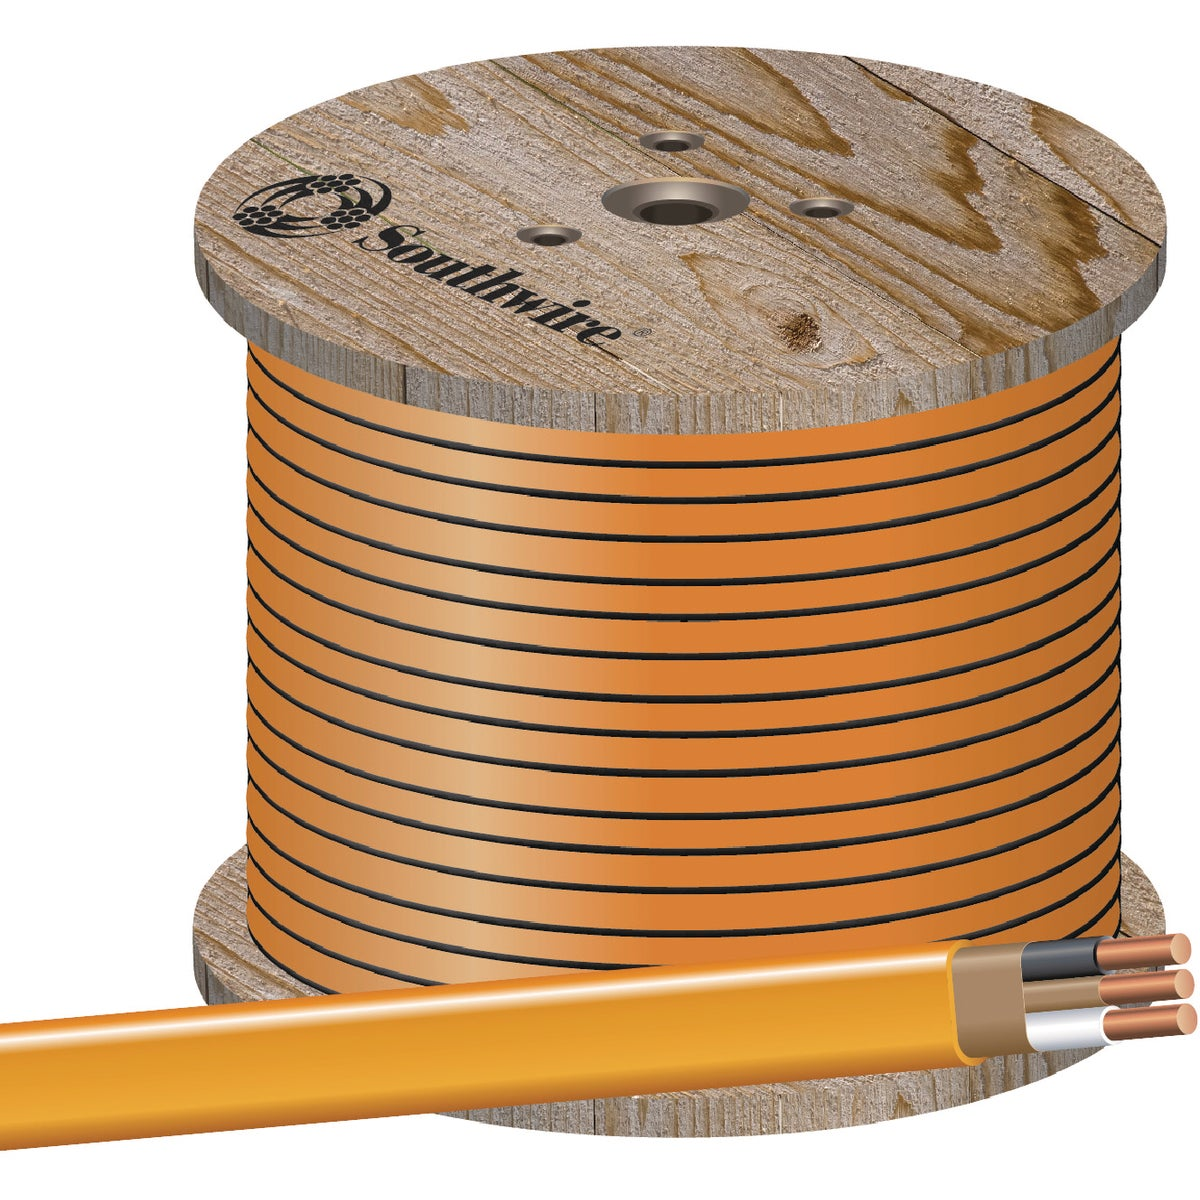 1000' 10-2 NMW/G WIRE - 28829001 by Southwire Company